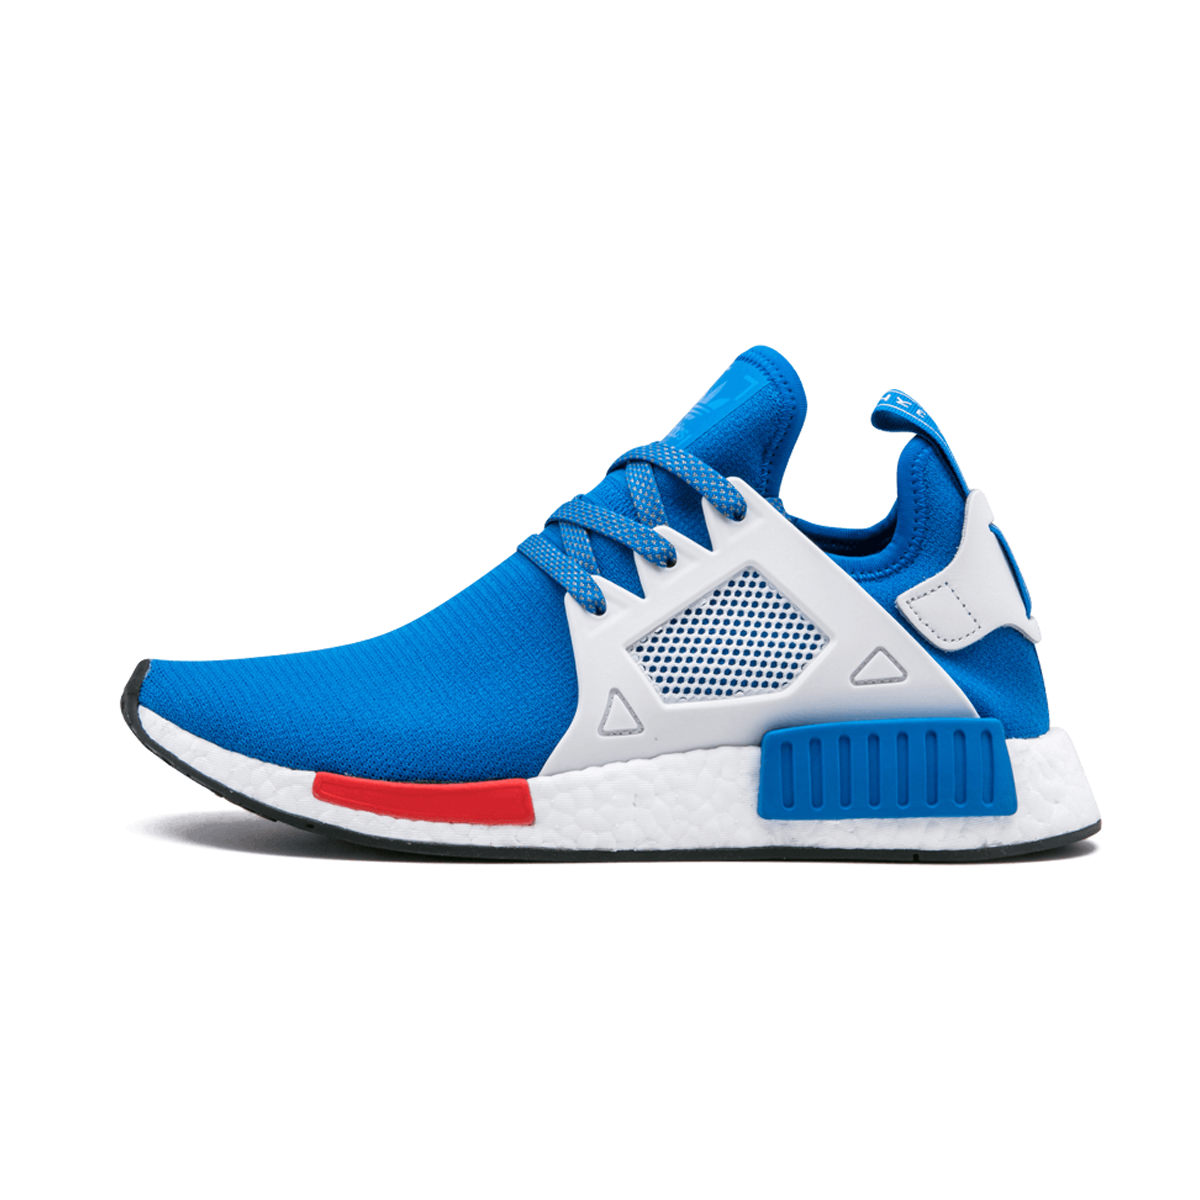 Details about Adidas NMD_XR1 Bluebird Europe release FootLocker Exclusive CG3092 SUPER Limited